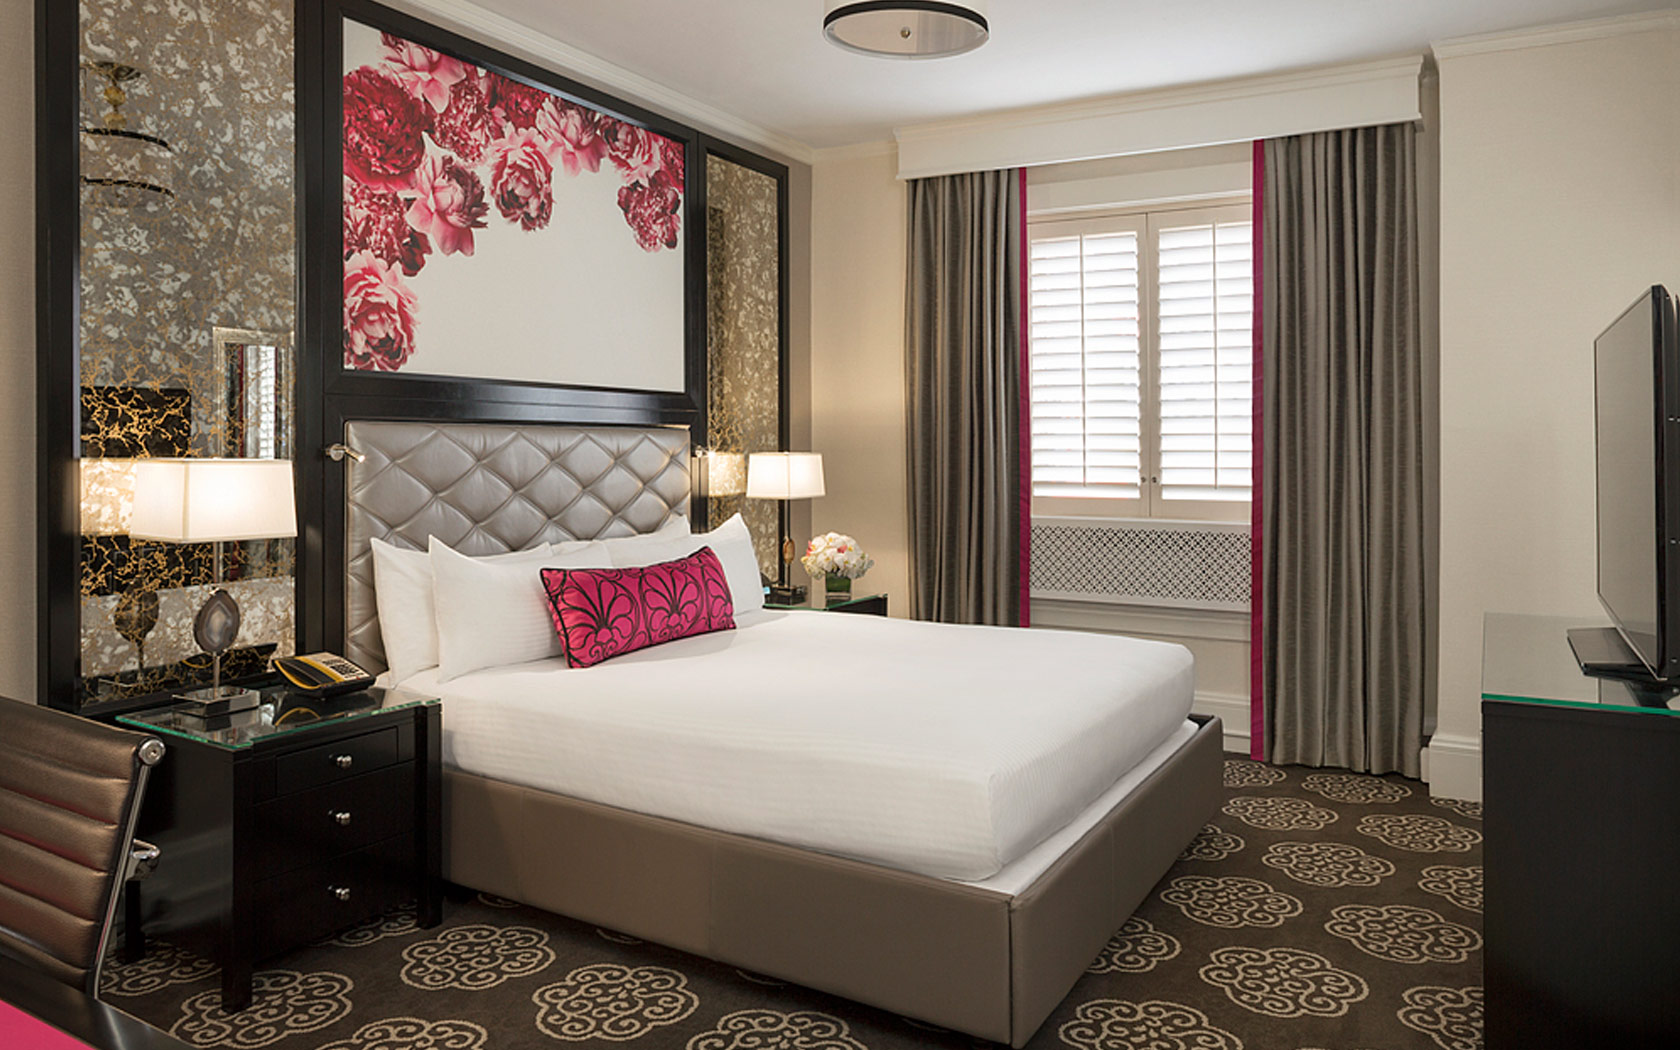 queen bed with grey and pink accented curtains and decor